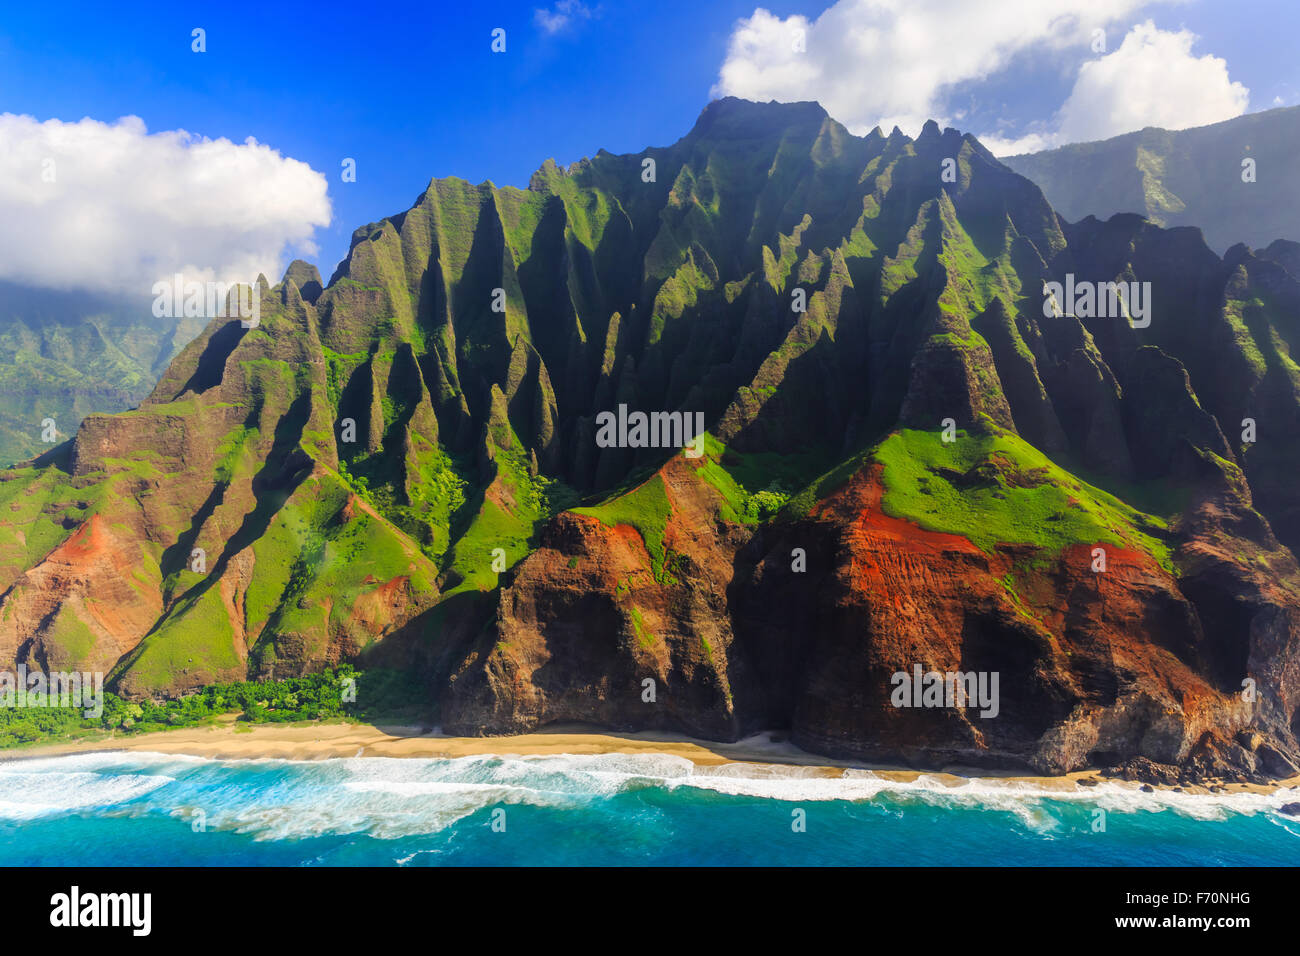 Aerial view of spectacular Na Pali coast, Kauai, Hawaii - Stock Image